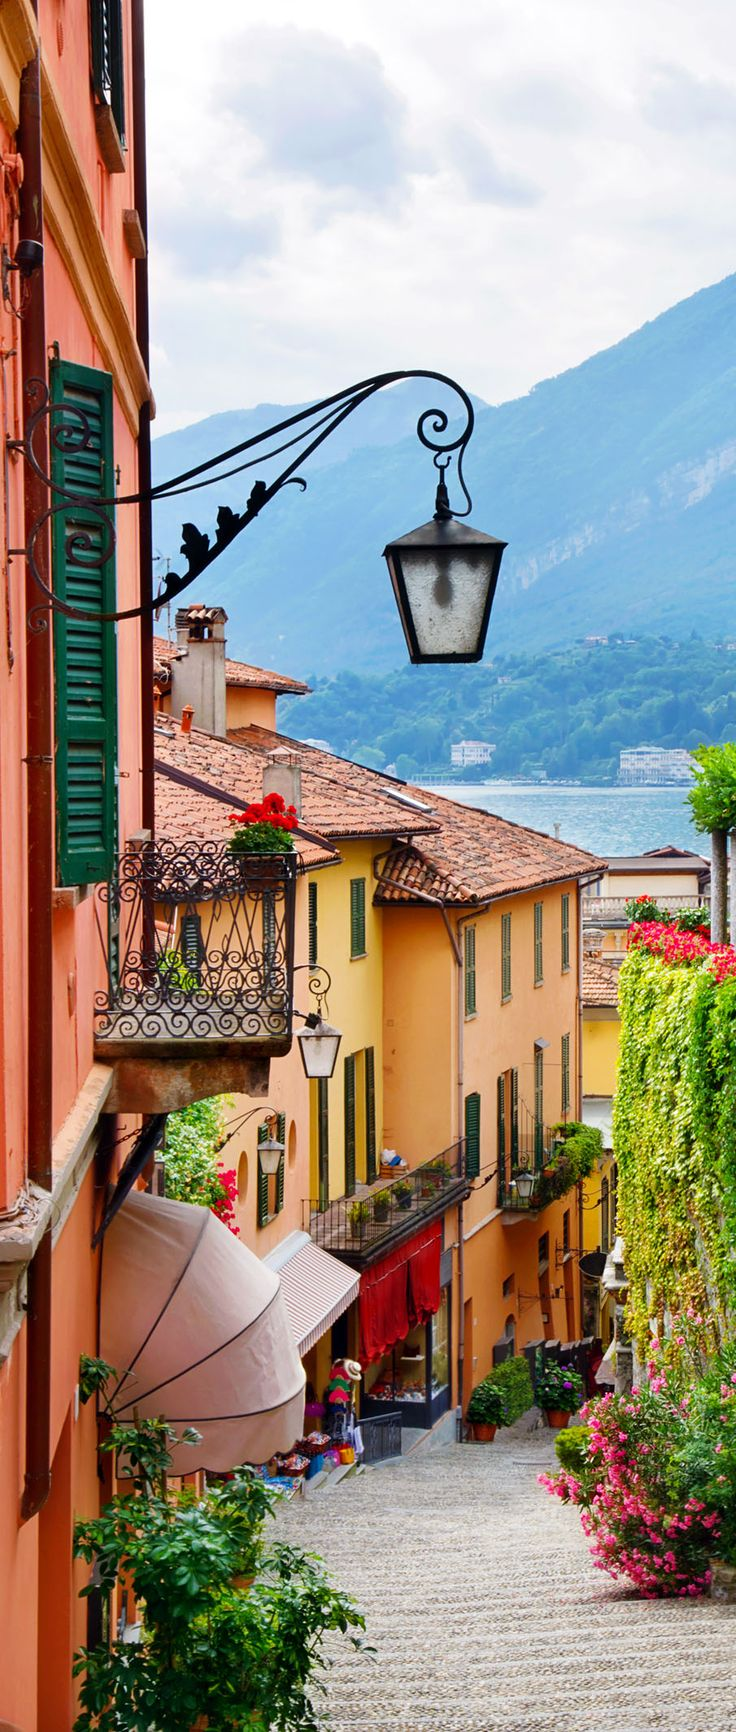 春天好色彩,好心情。 Bellagio, Lake Como. Italy